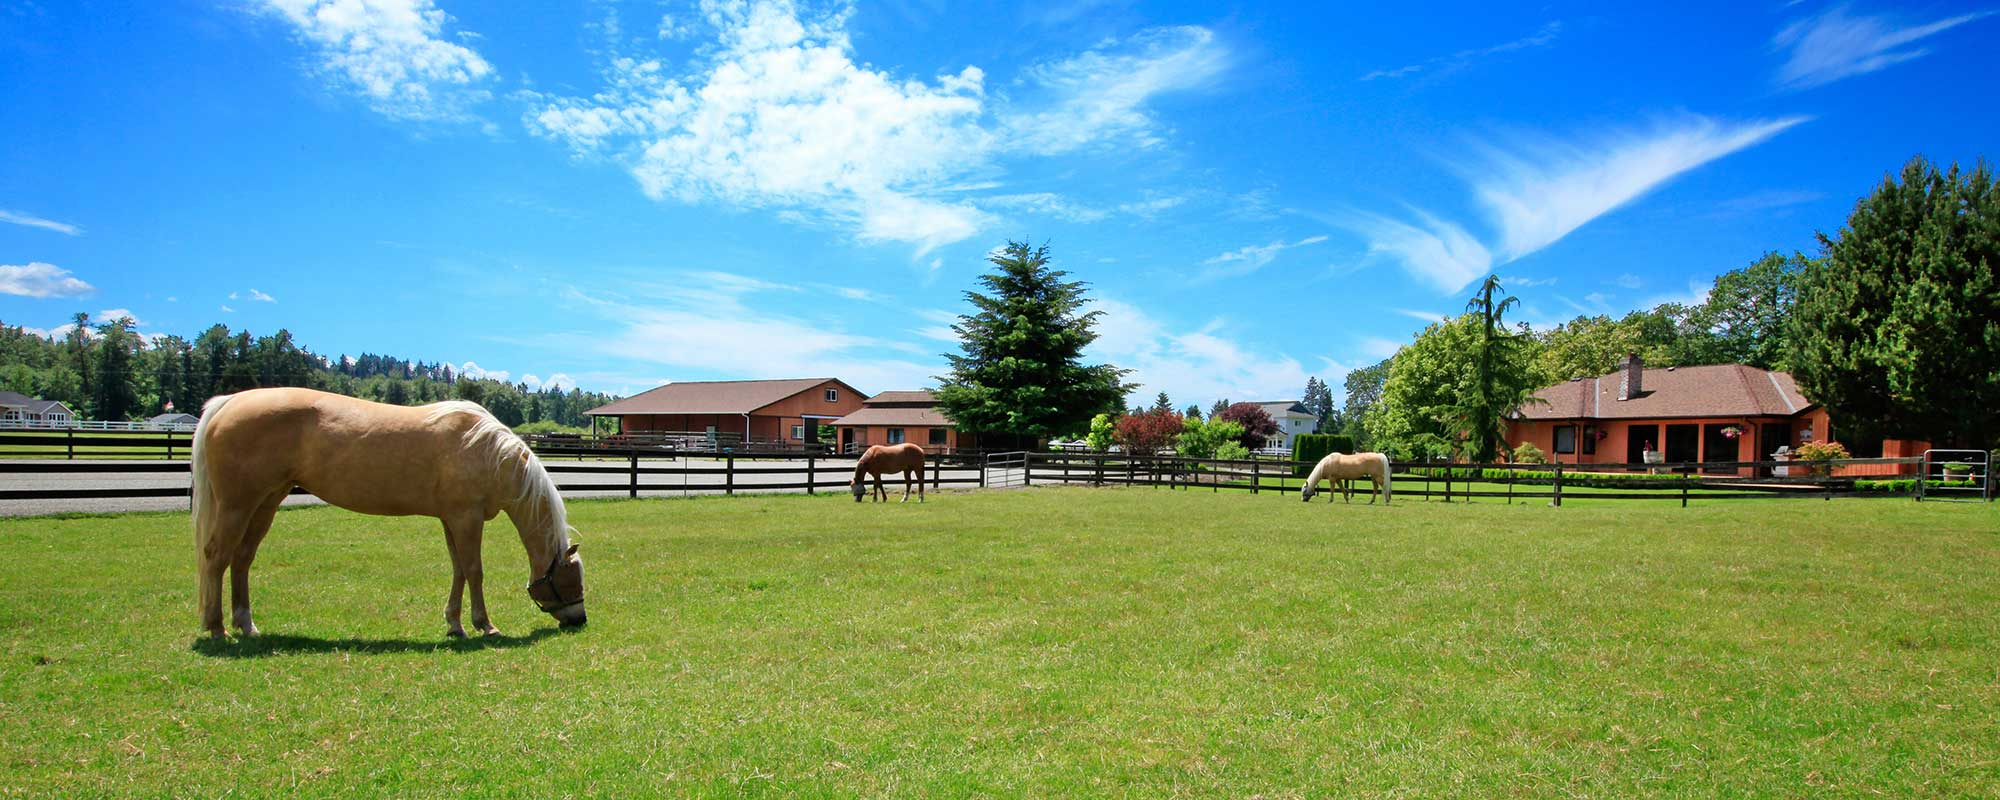 Horses grazing at horse farm